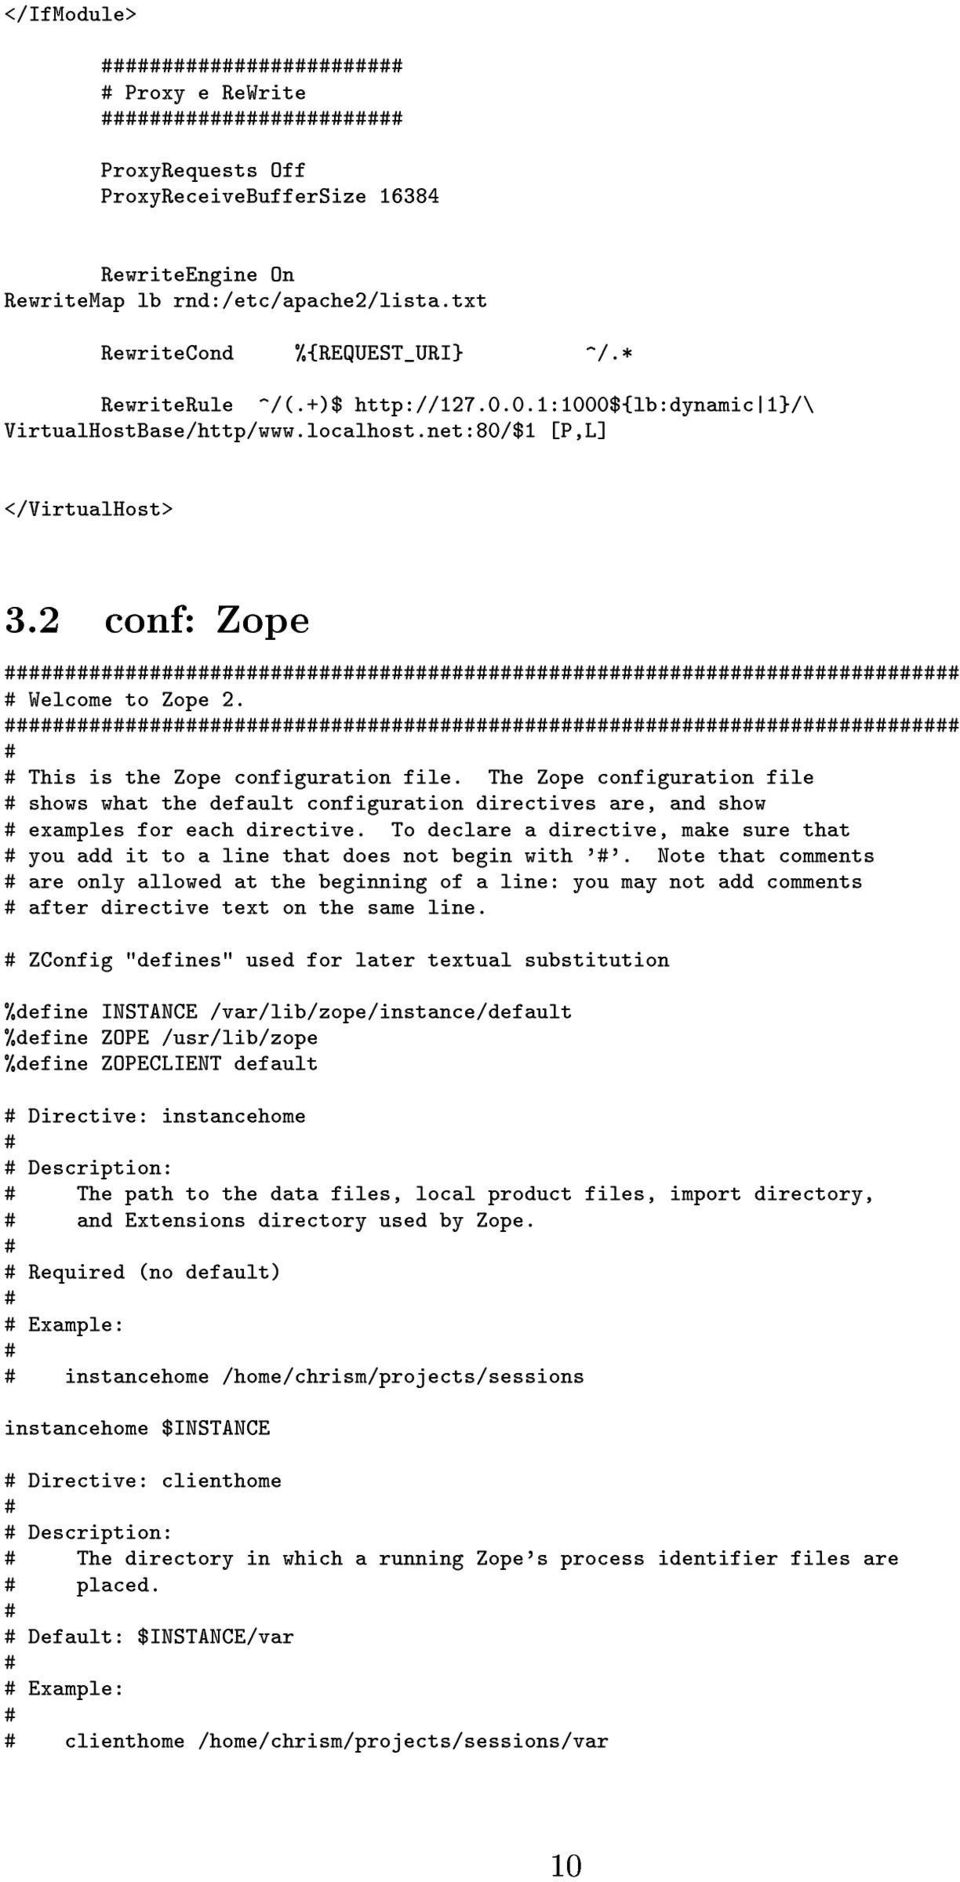 The Zope configuration file shows what the default configuration directives are, and show examples for each directive.